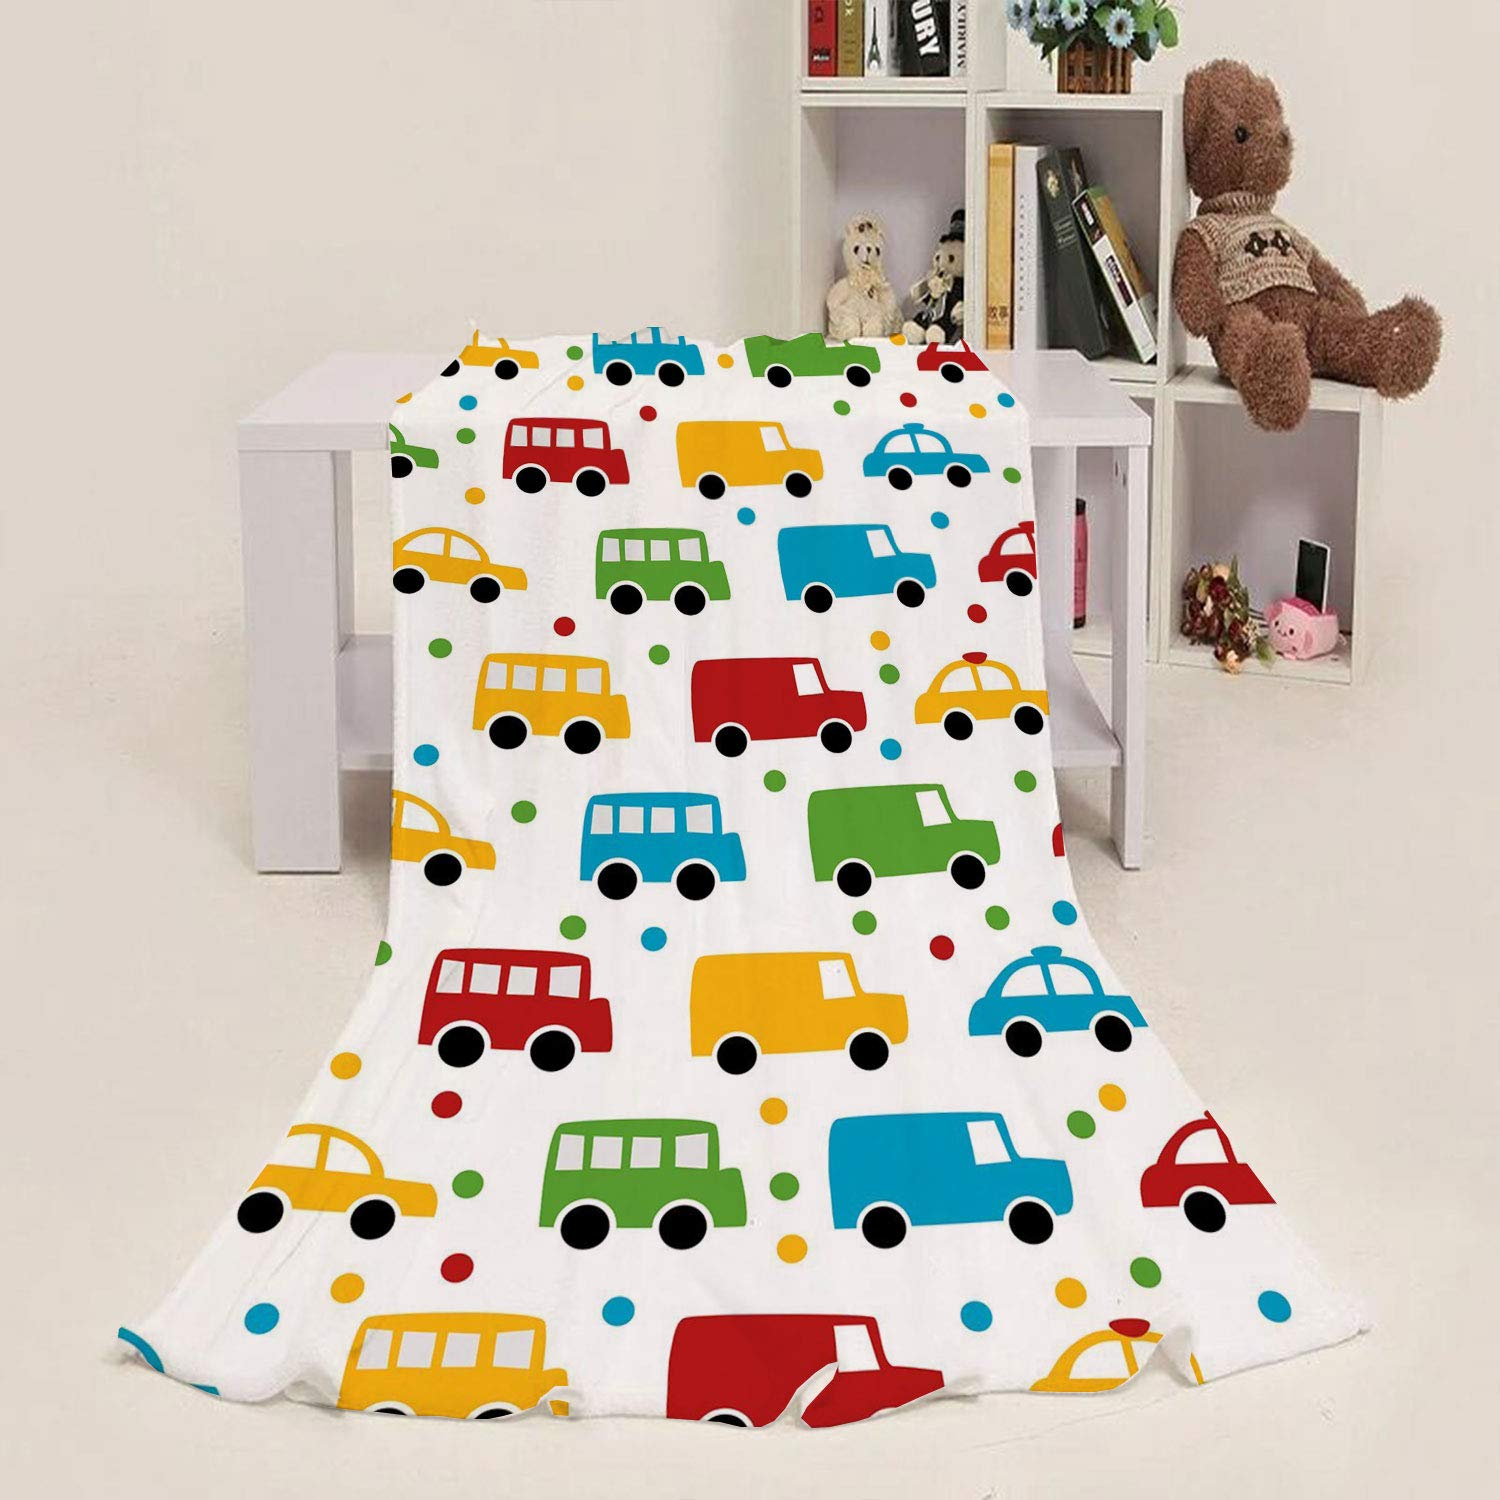 Kid Blanket Cars,Vivid Colored Silhouettes of Transportation Vehicles Bus Taxi Automobile Kids Pattern,Multicolor 50''x 70'' Blanket Super Soft Warm